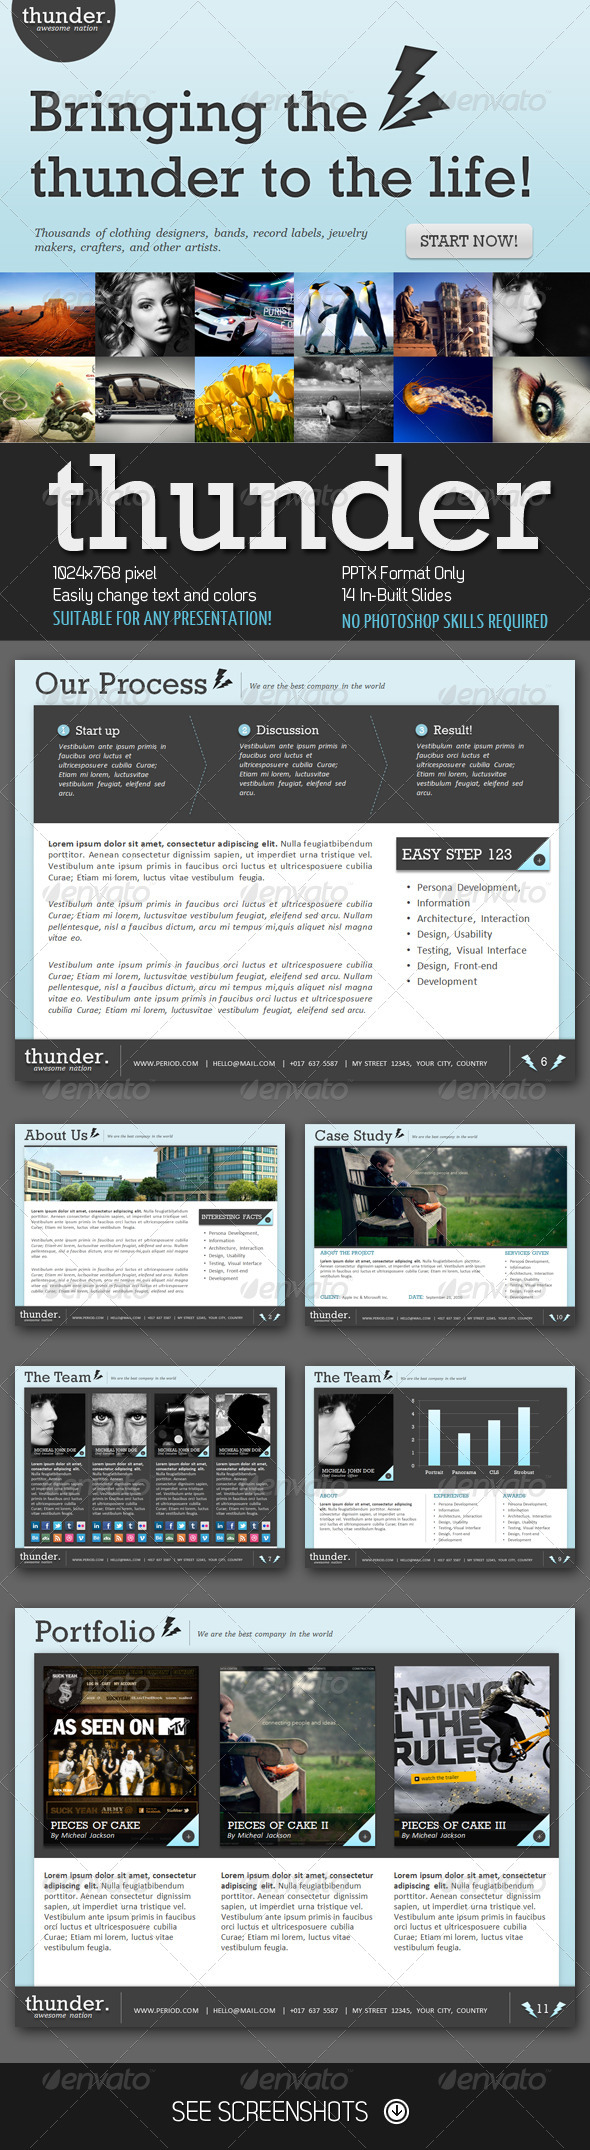 Thunder PowerPoint Presentation - Creative Powerpoint Templates